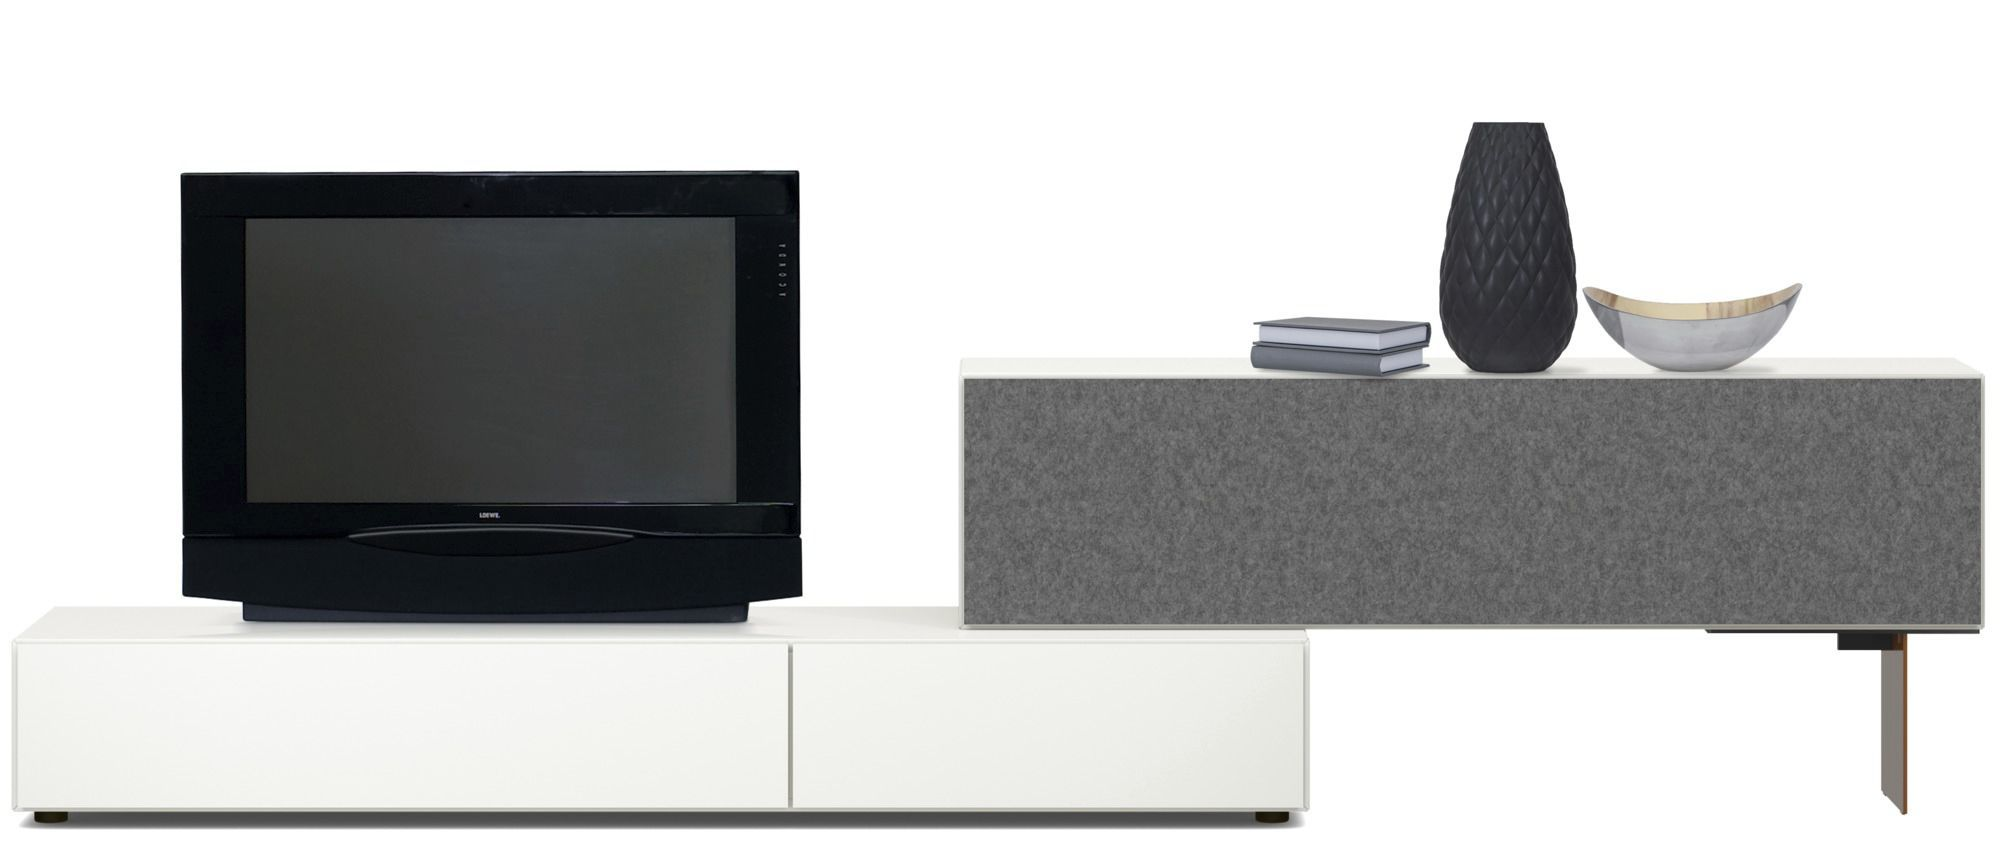 Meuble Hifi Tv Design Meuble Tv Contemporain Hi Fi En Verre En Mdf